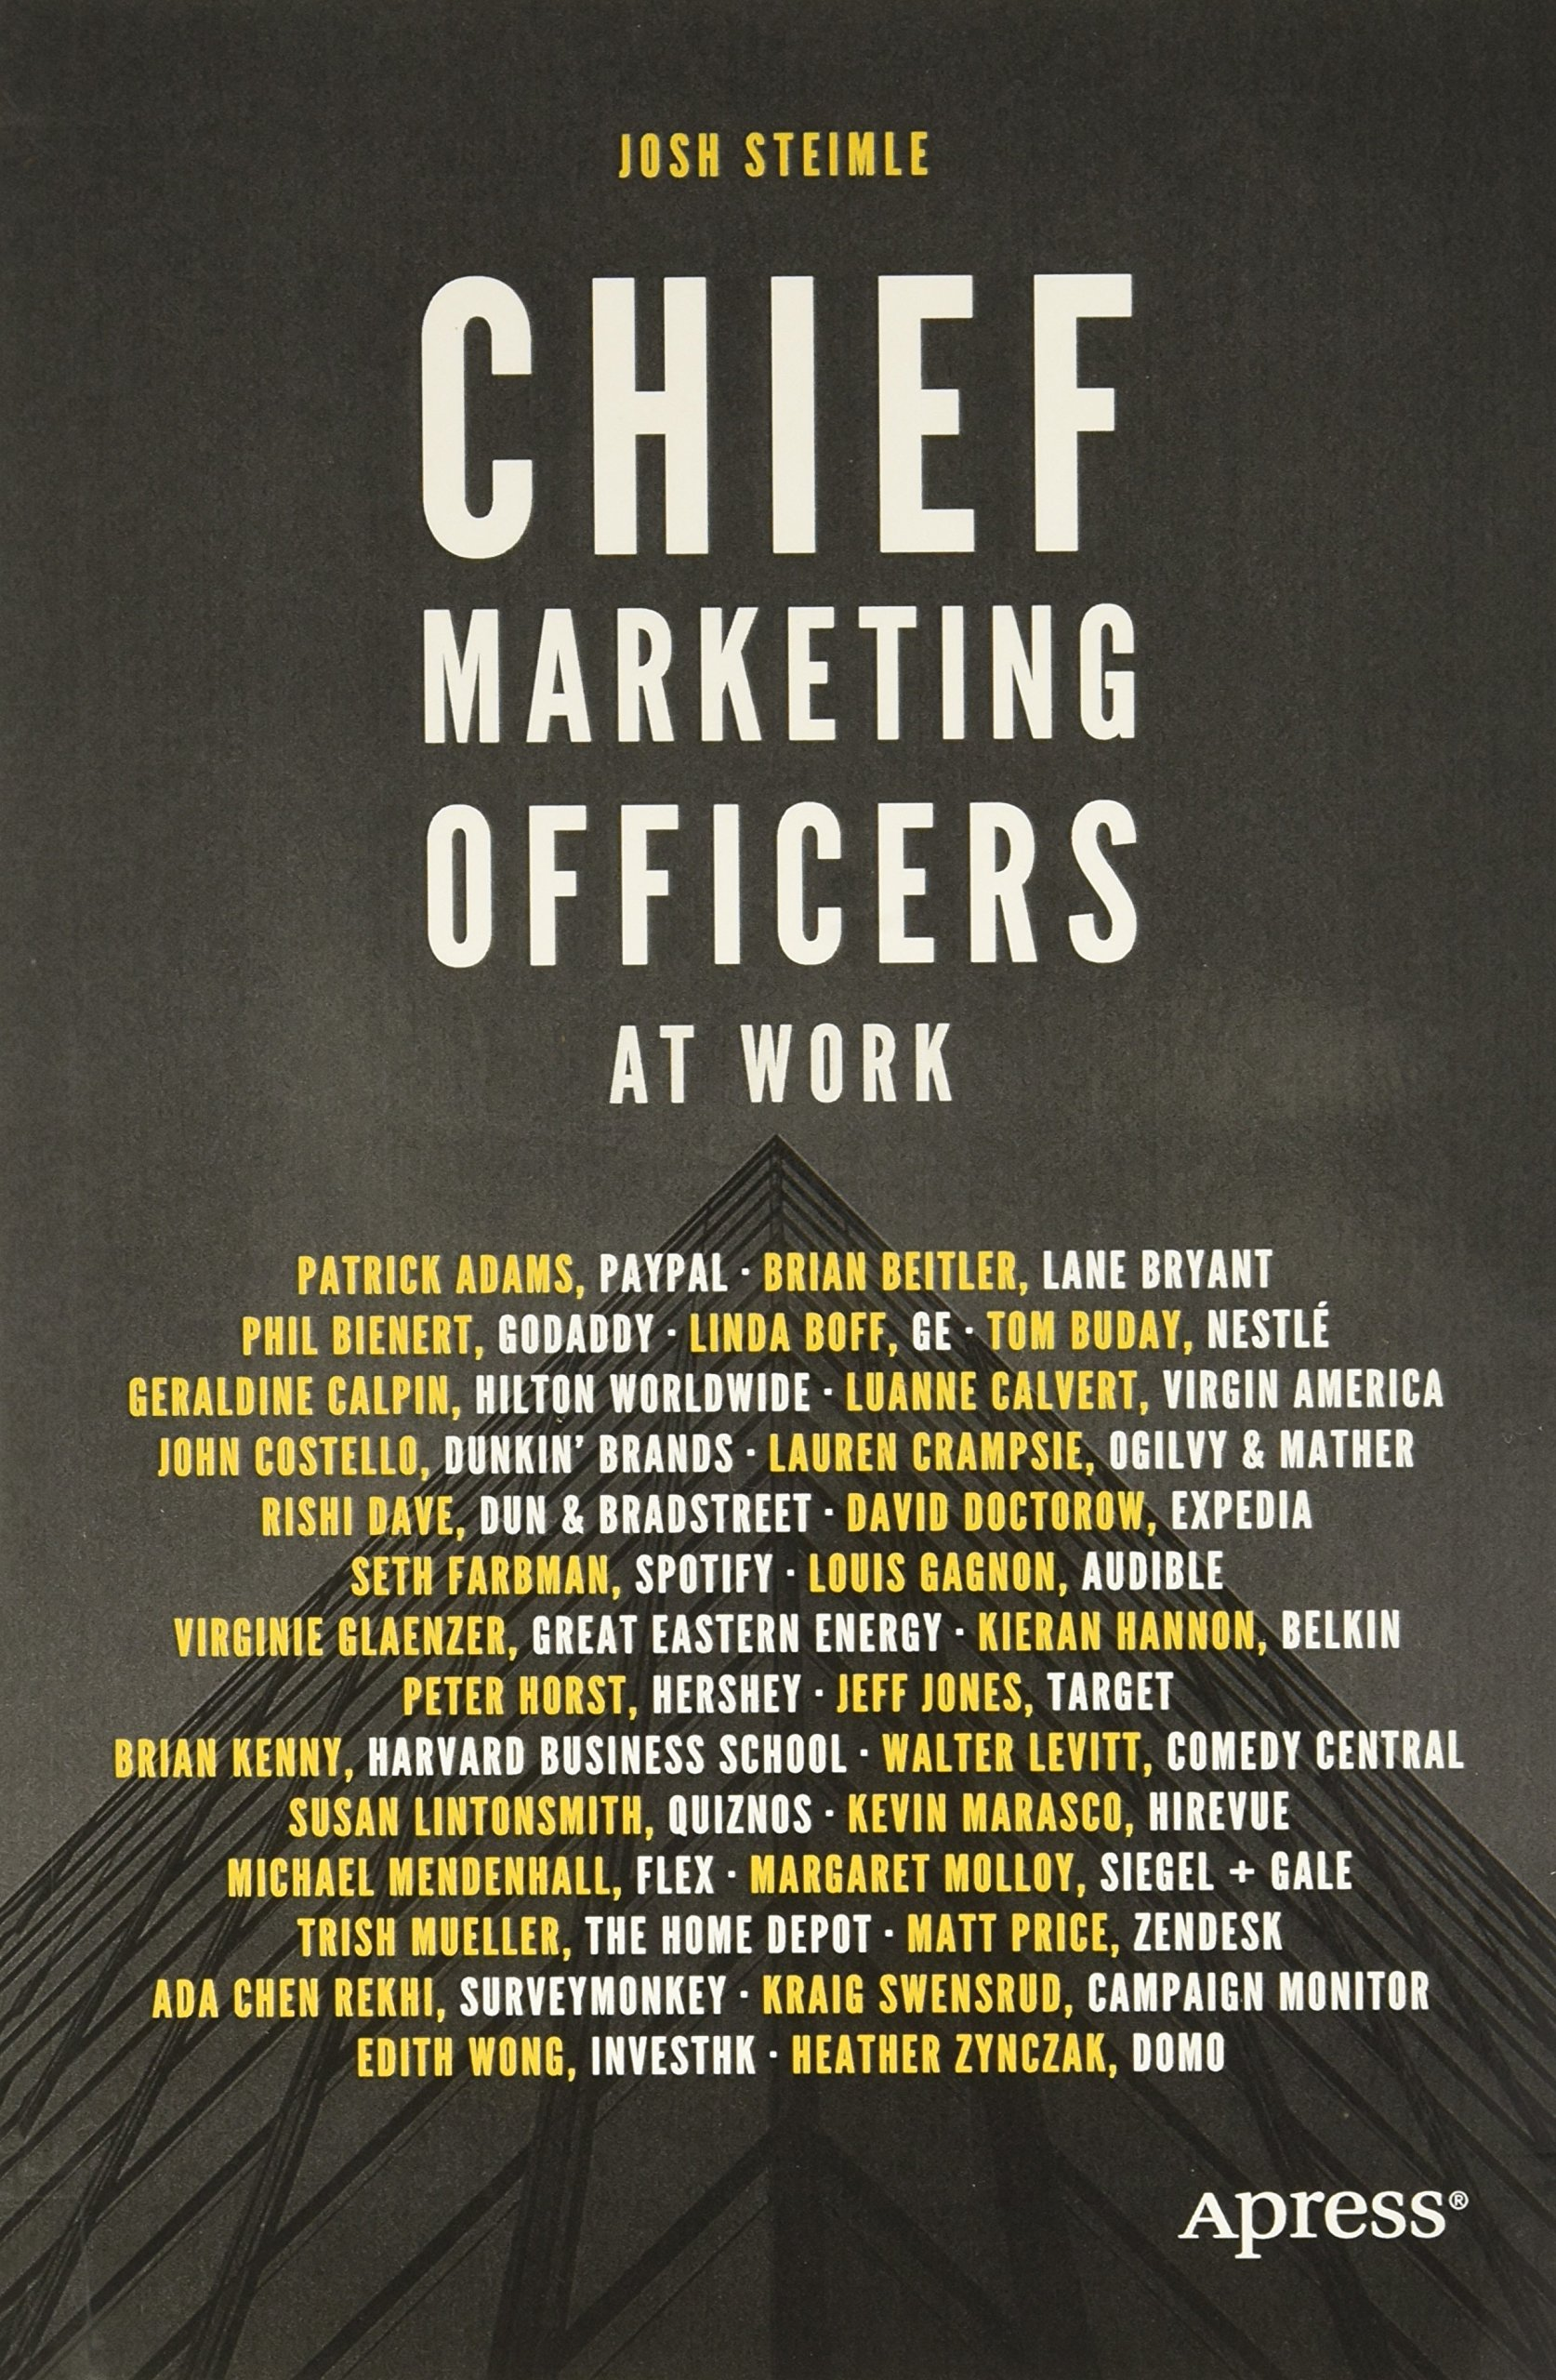 Chief Marketing Officers at Work